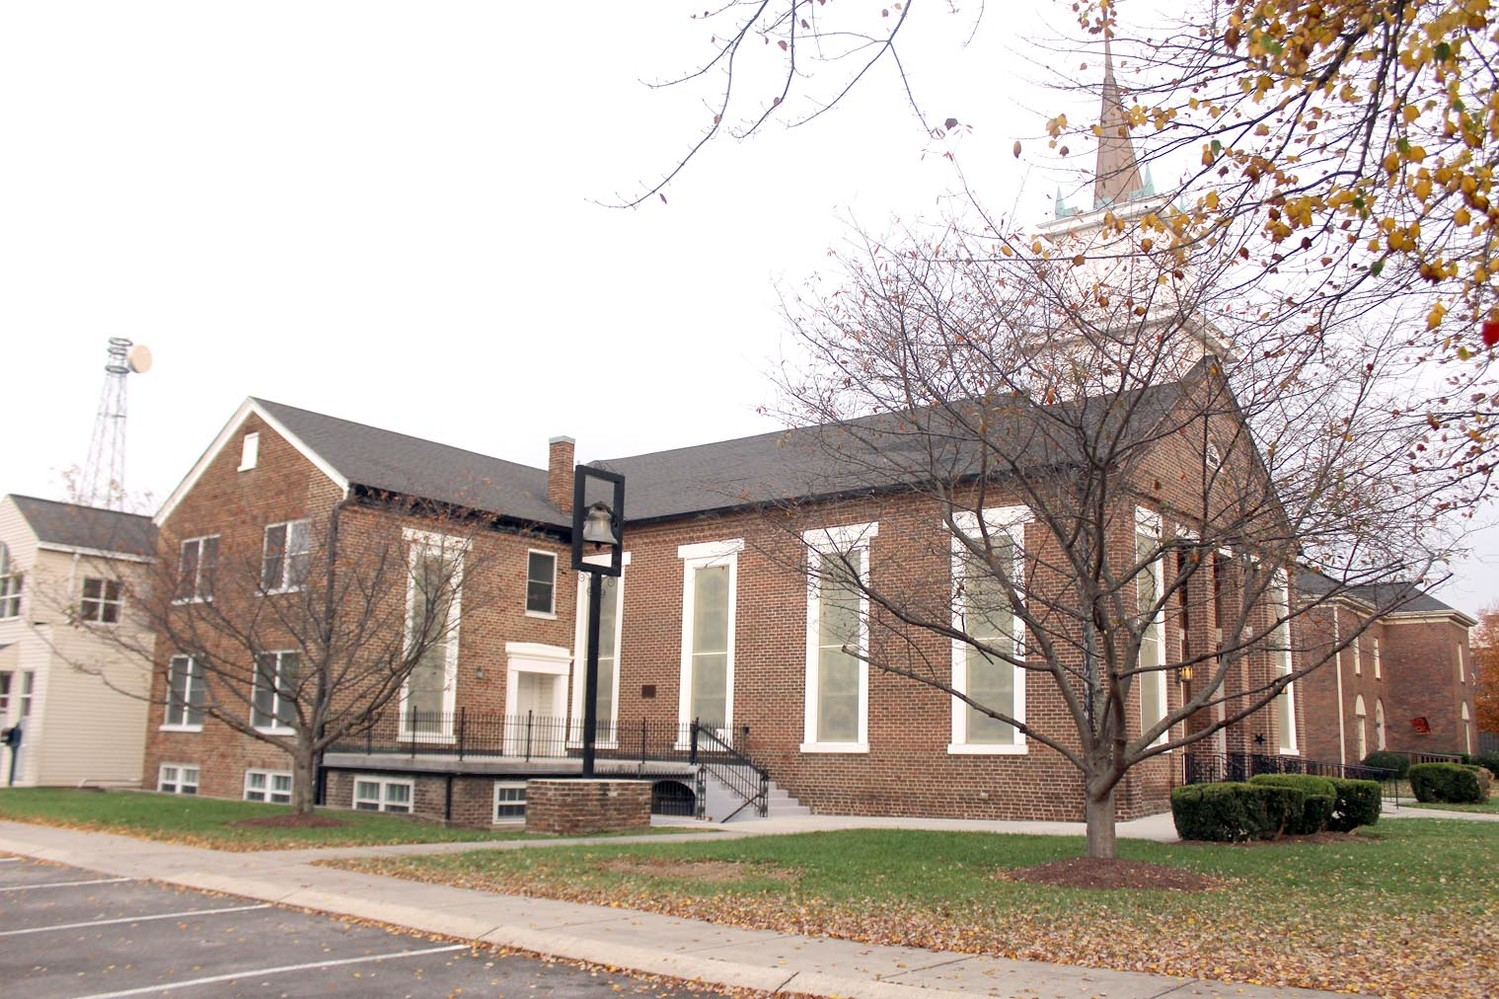 FIRST PRESBYTERIAN Church is located on Ocoee Street. It is the oldest church building in the community.